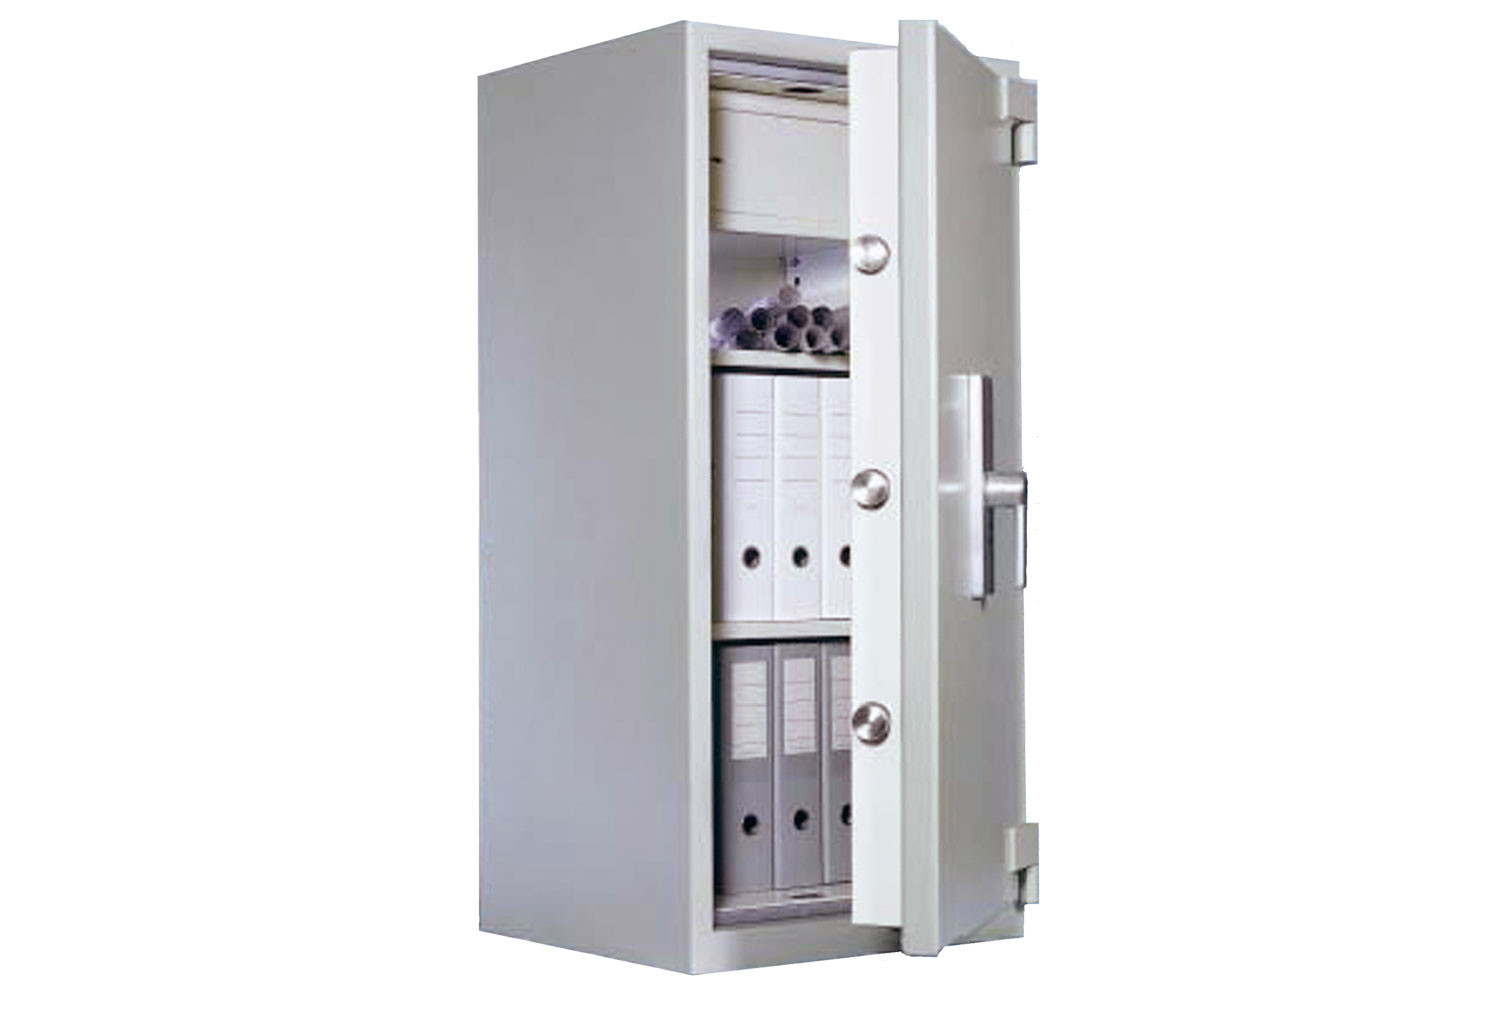 Securikey Euro Grade 2580N Safe With Key Lock (580ltrs)